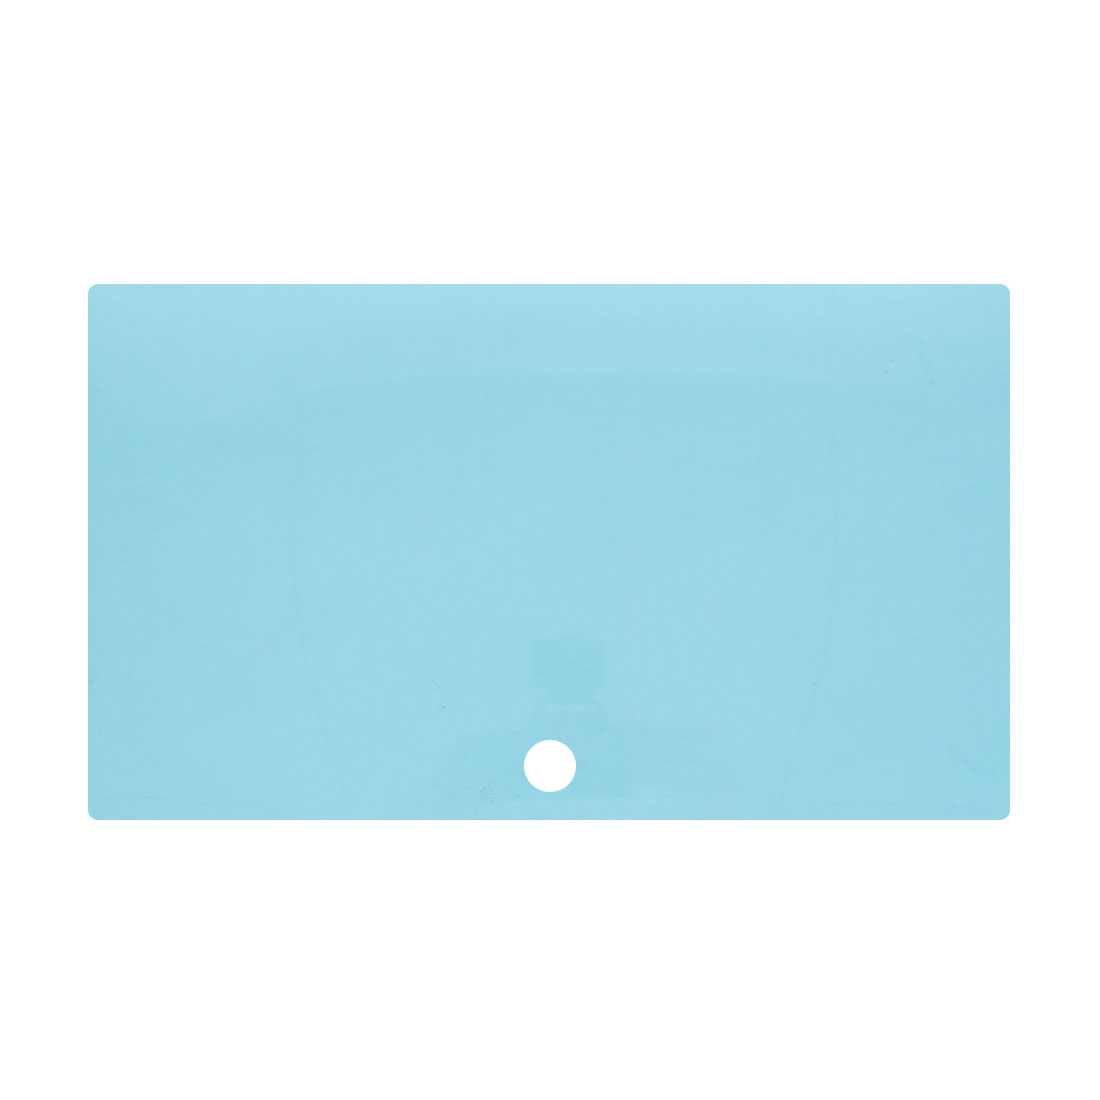 Clear Blue LCD Screen Protector Guard Cover Film for Apple Macbook Retina 13.3 Inch